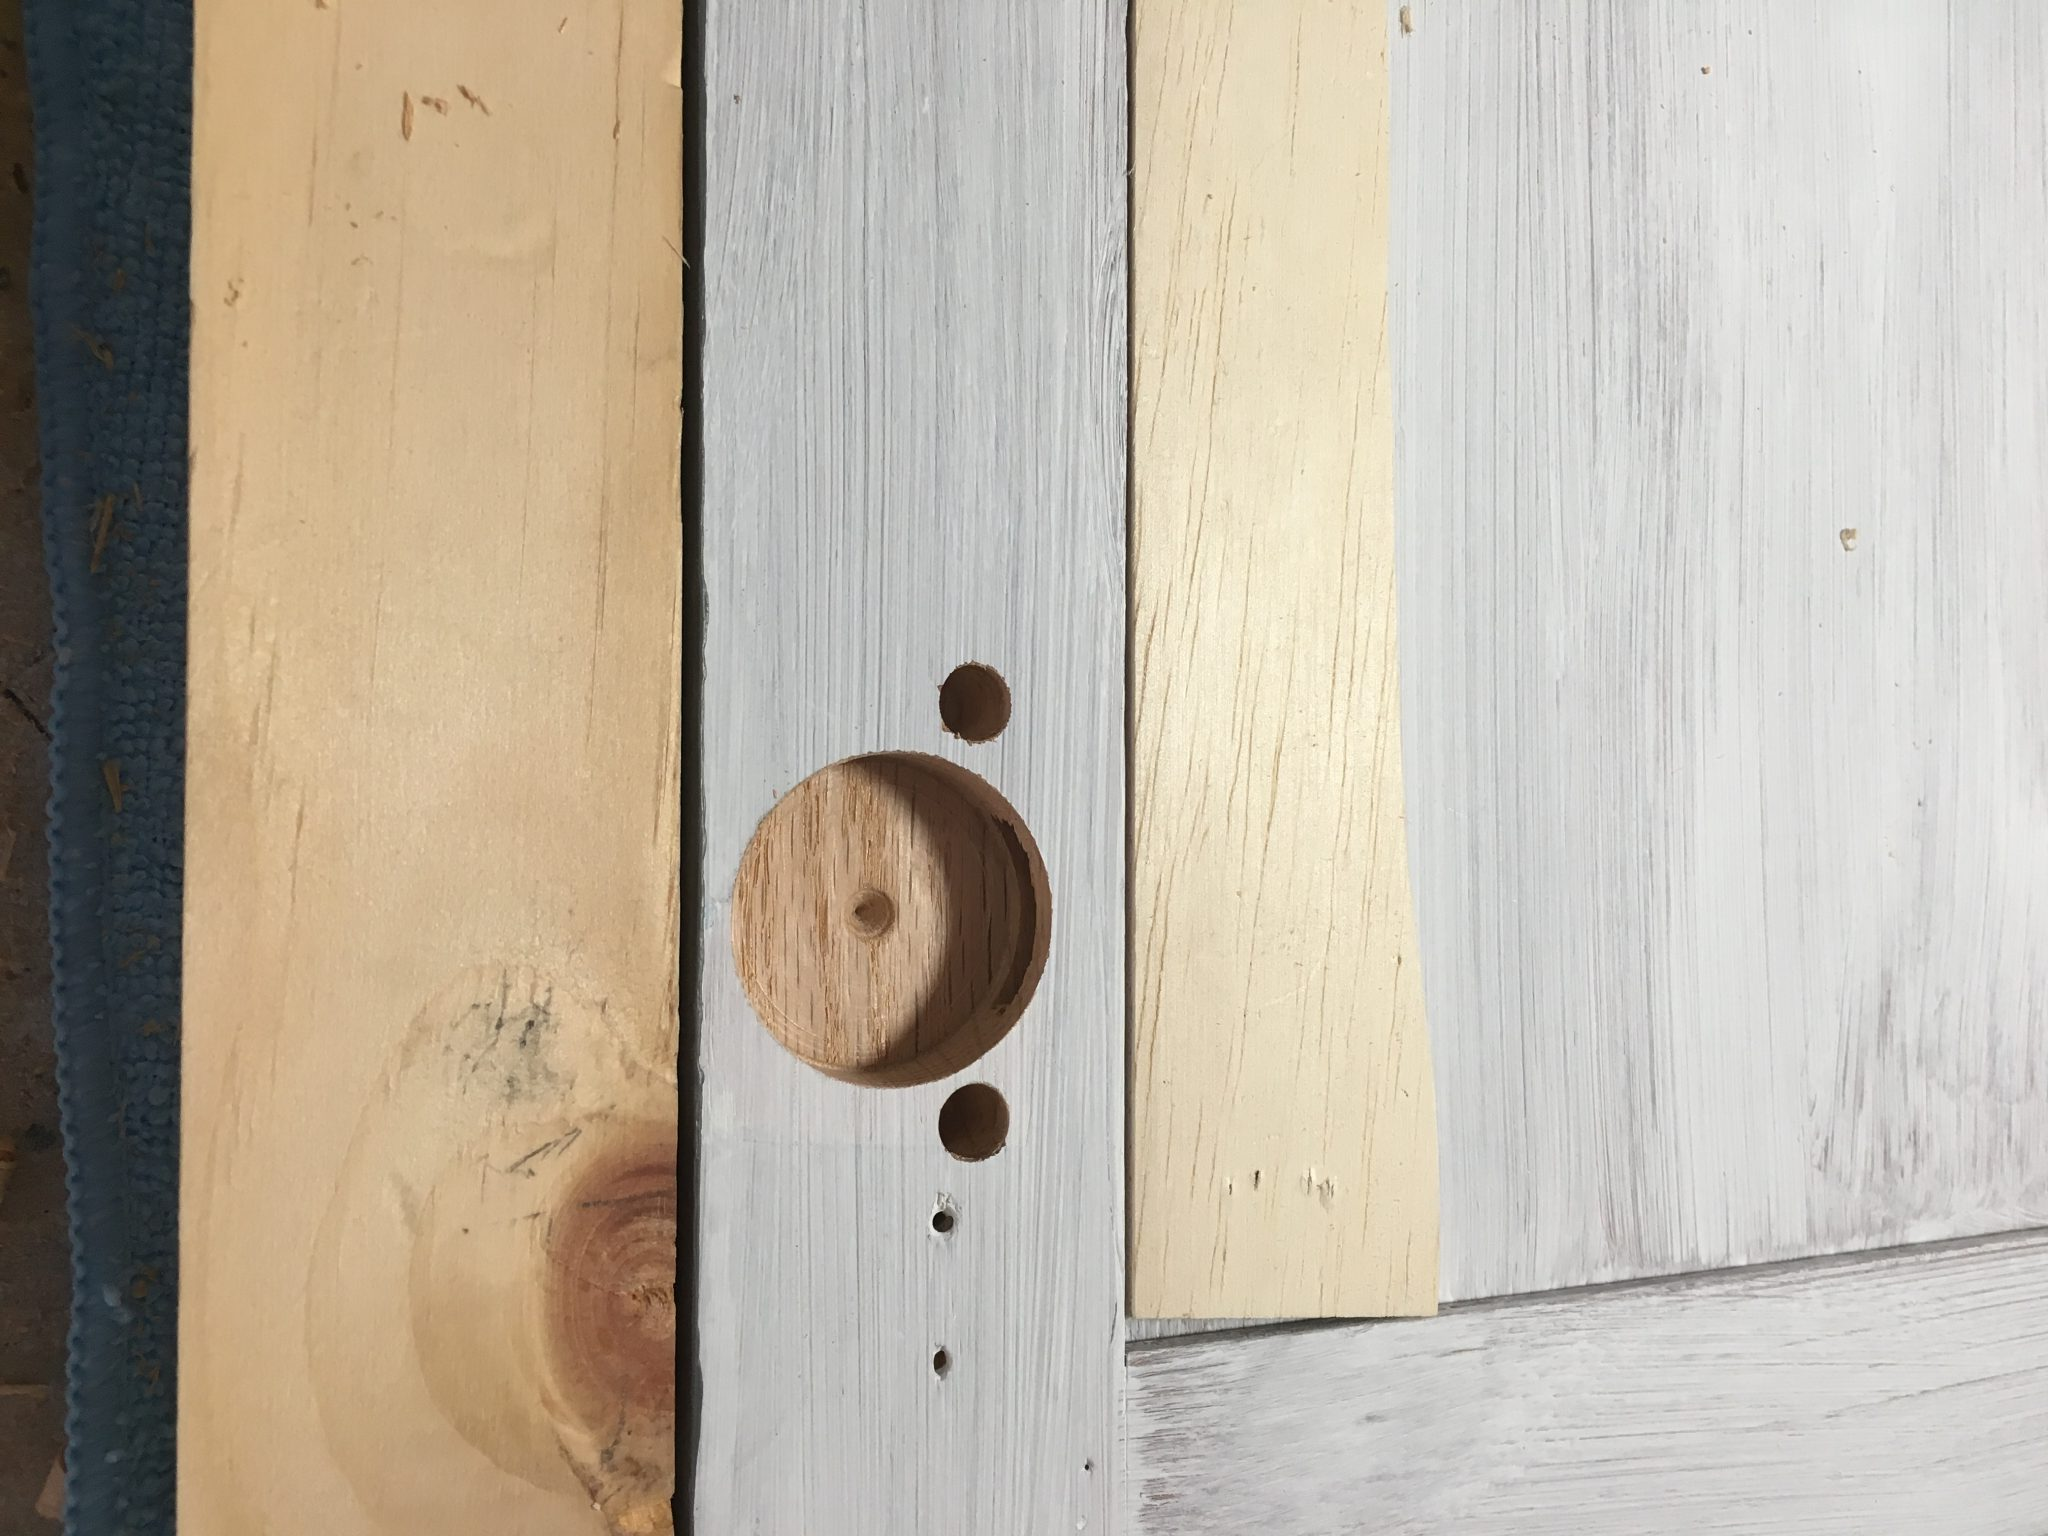 How to Install Concealed Hinges on Cabinet Doors